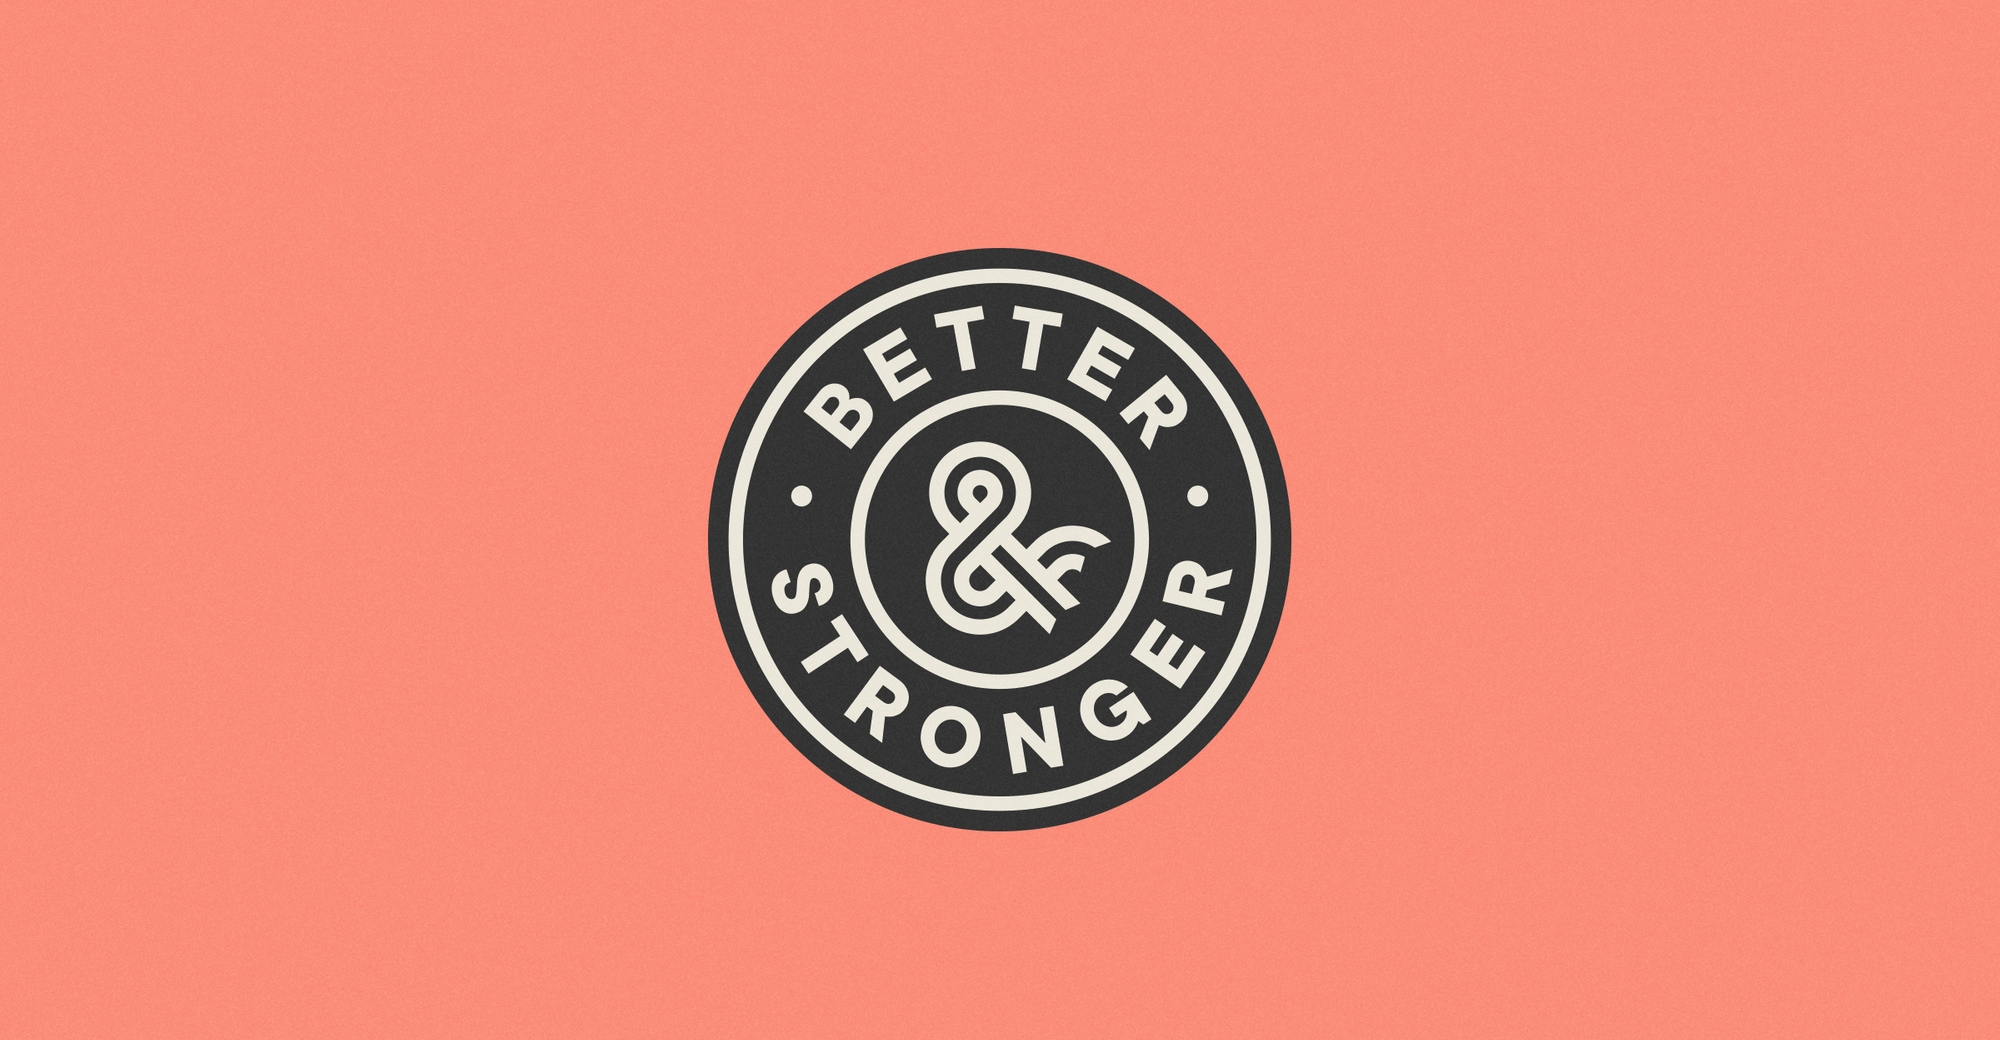 Better & Stronger